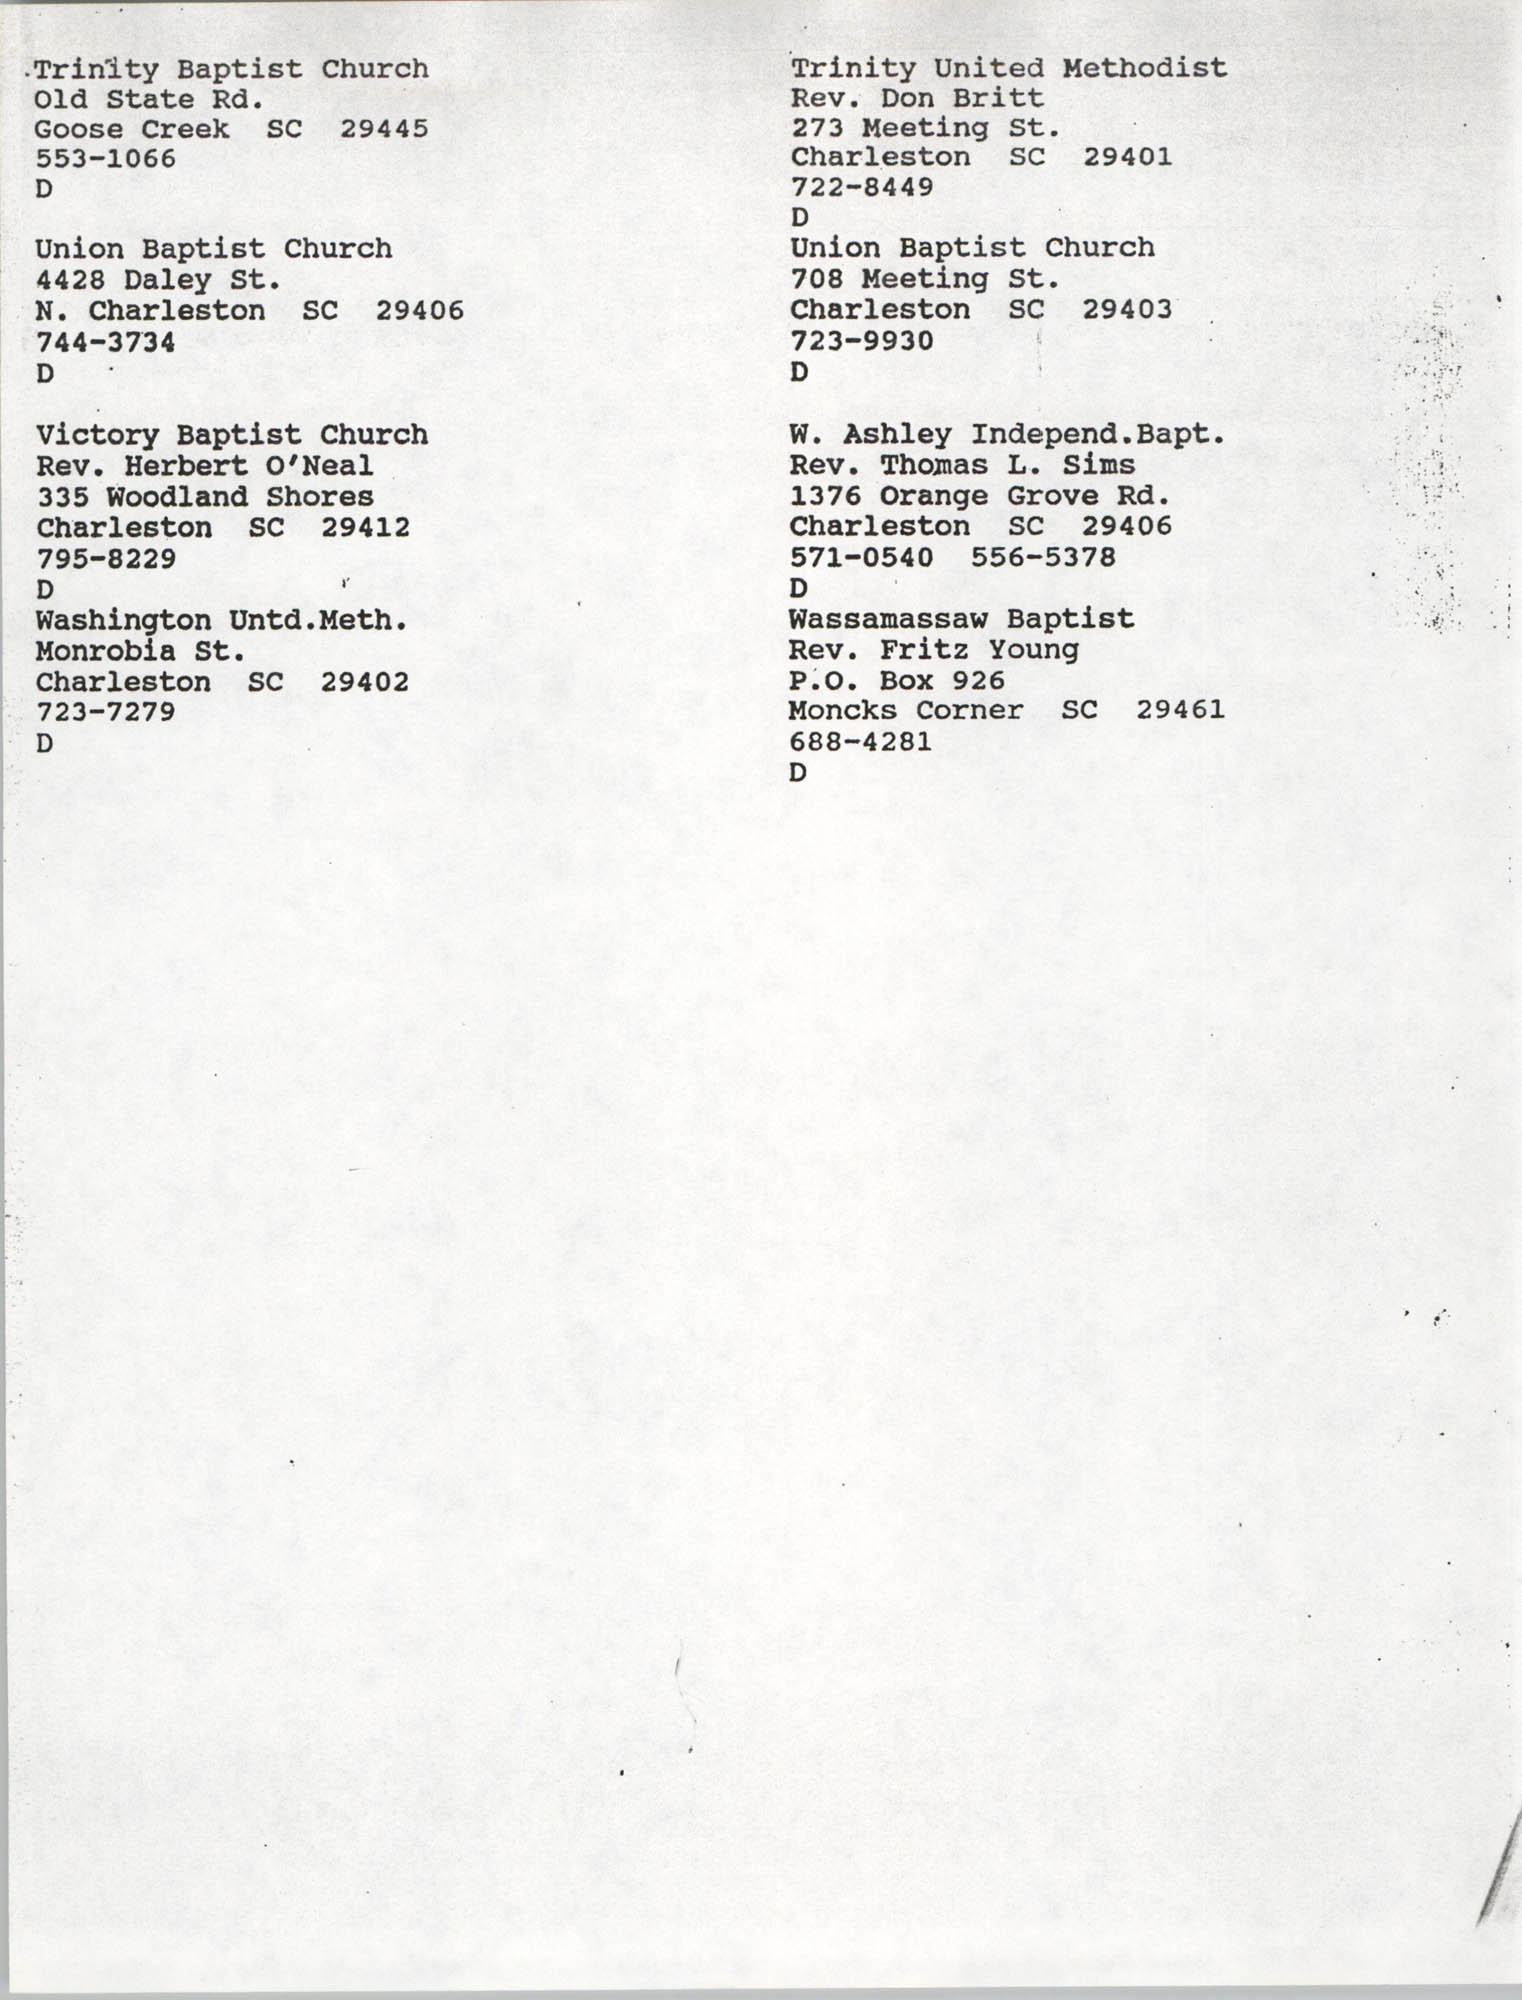 Church Contact List, Charleston Chapter of the NAACP, Page 25